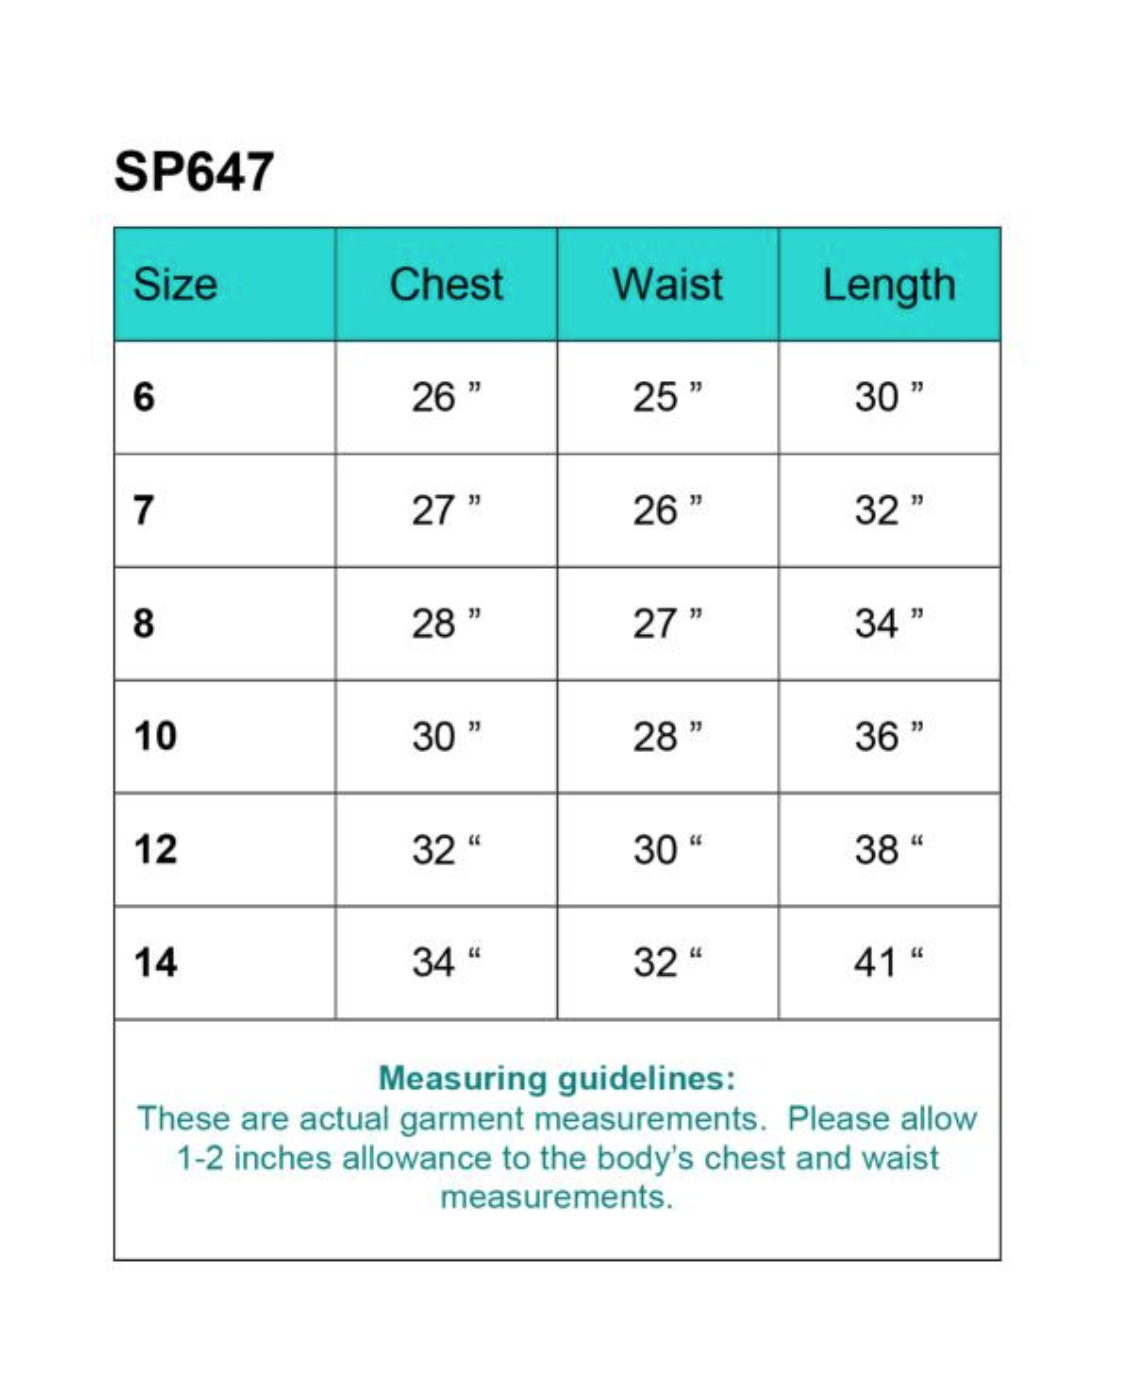 sizing-chart-sp647.png